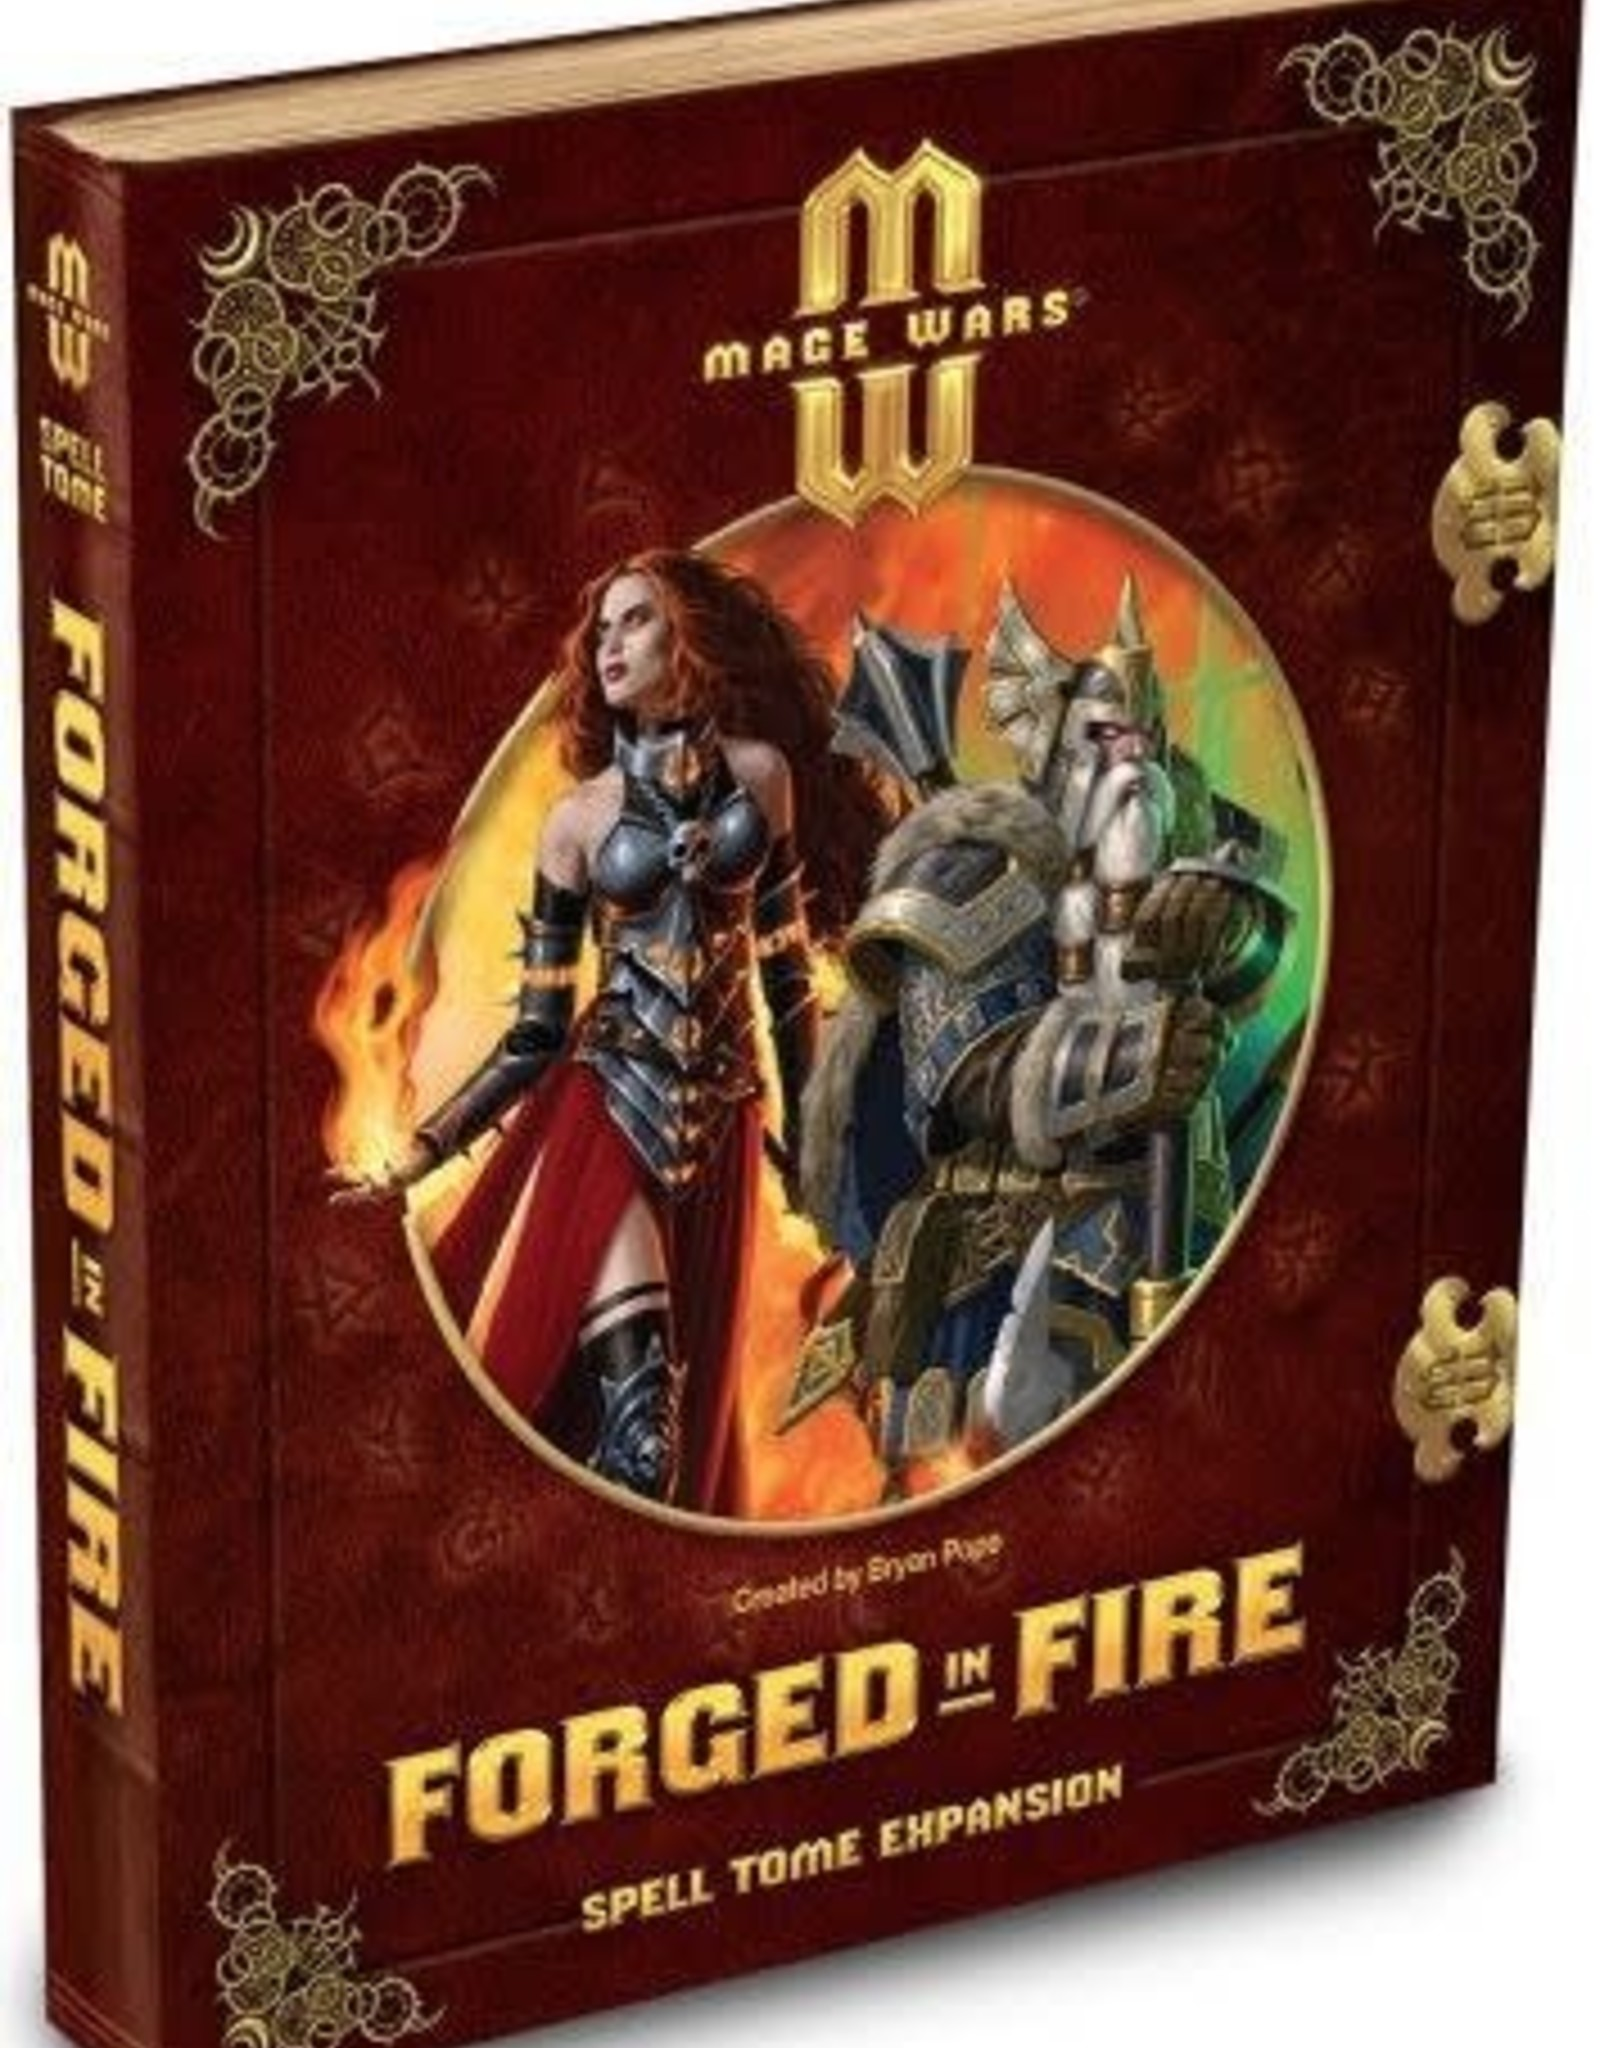 Arcane Wonders Mage Wars: Forged in Fire Spell Tome Expansion